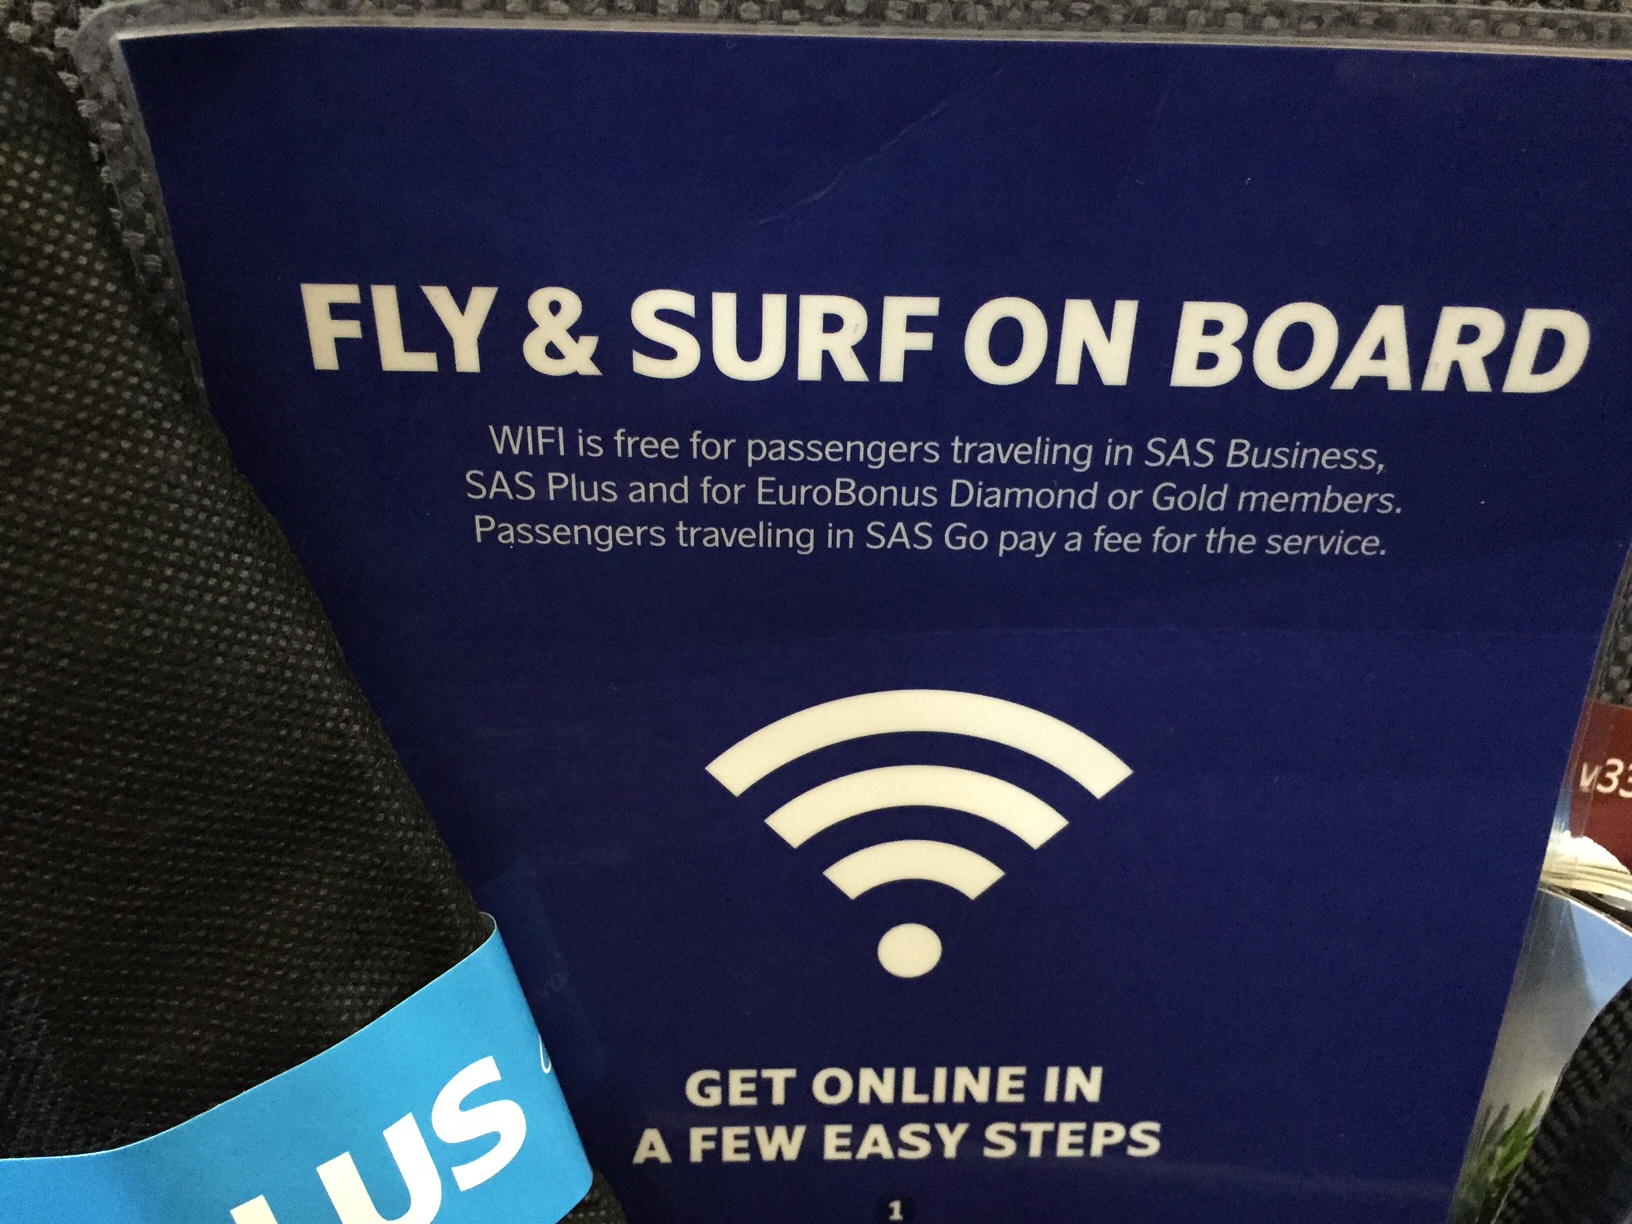 Ustabilt WiFi ombord, men gratis for SAS Plus, SAS Business og statusmedlemmer i EuroBonus.